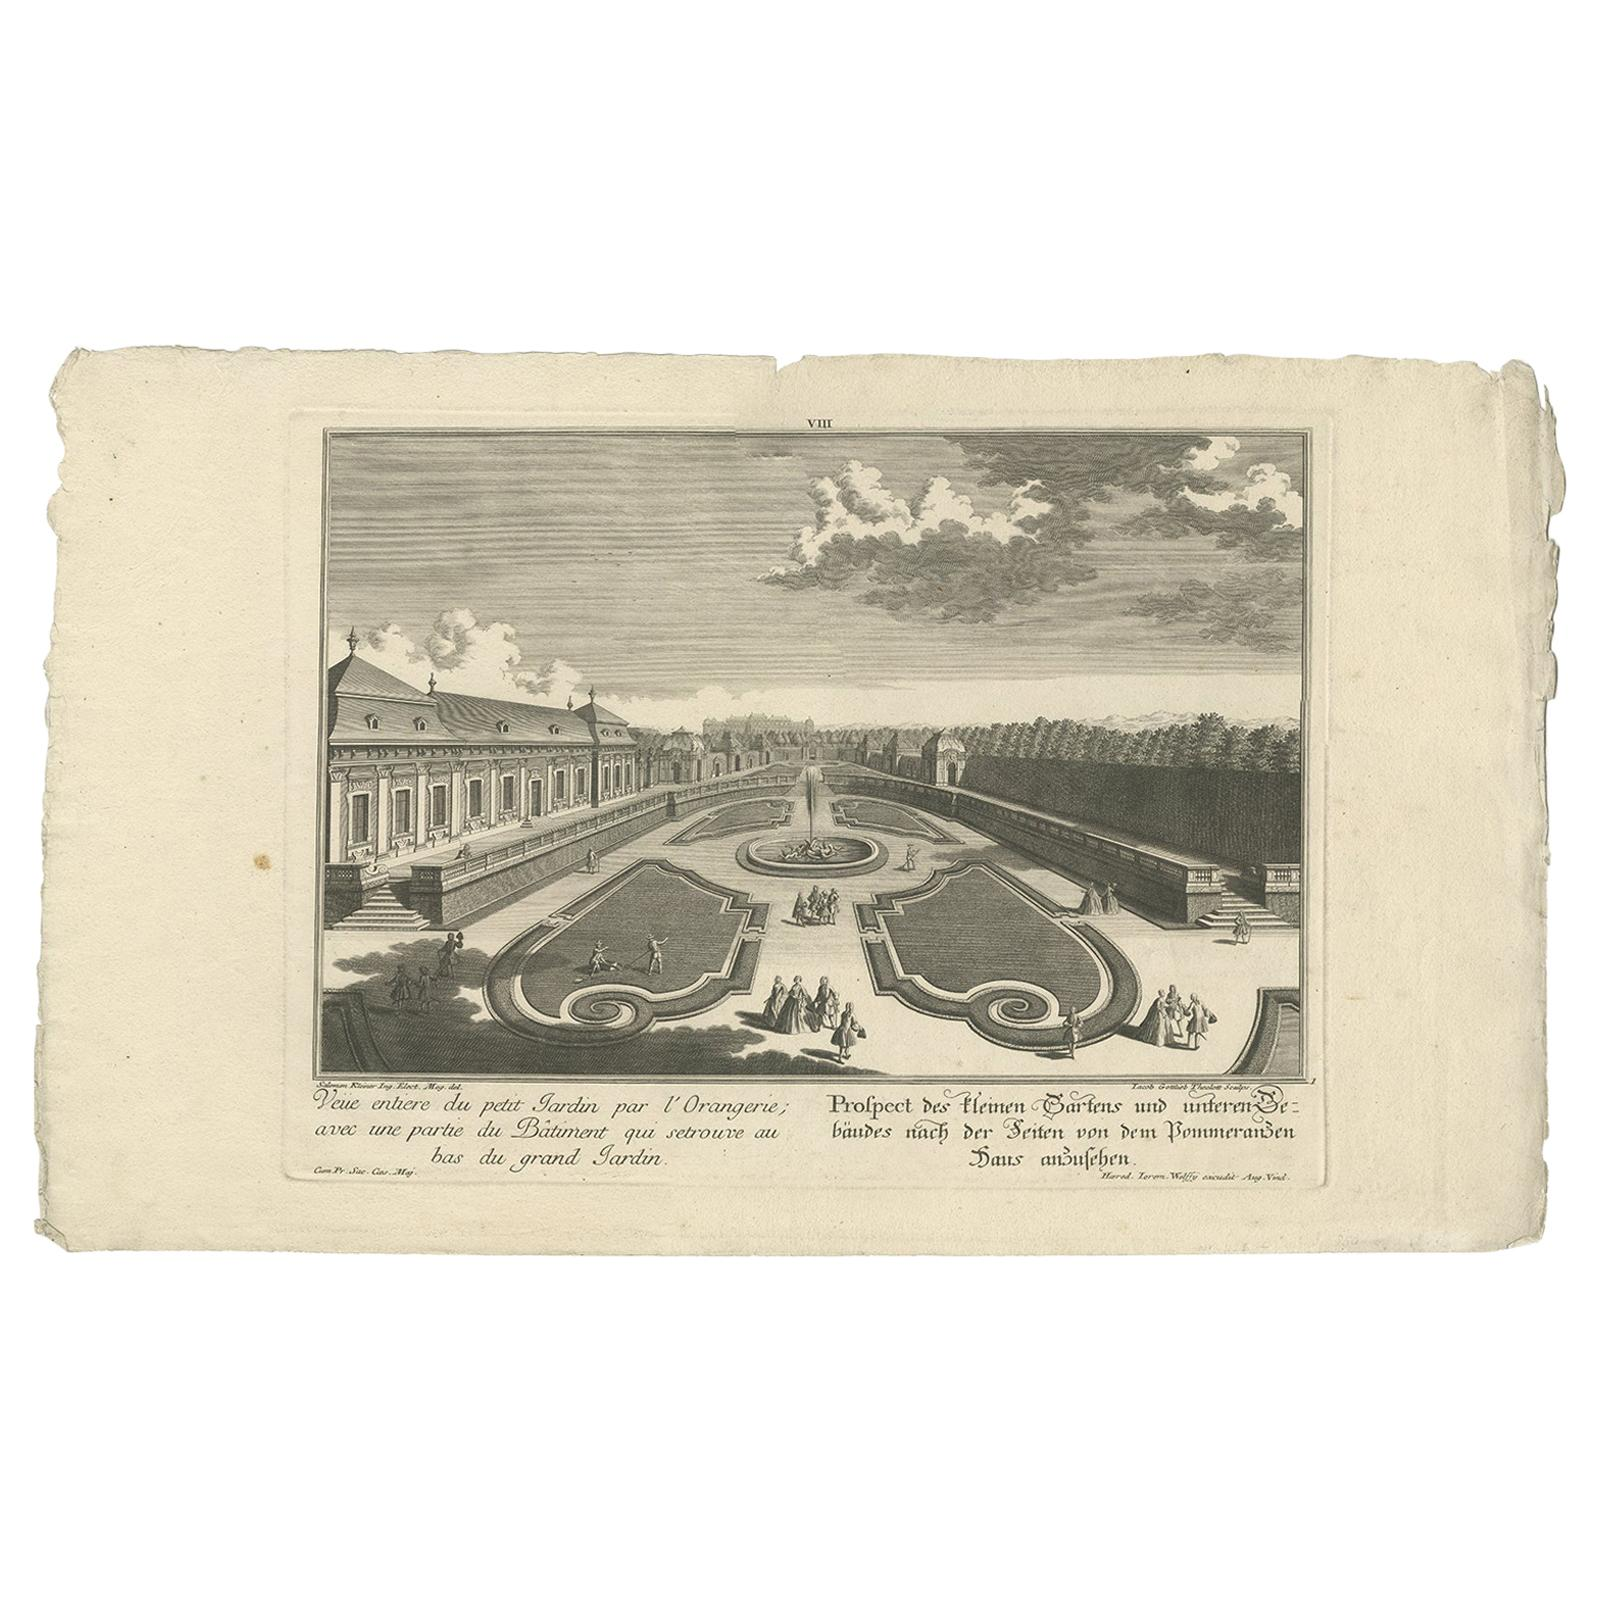 Antique Print of a Small Garden and Building by Wolff, 1737